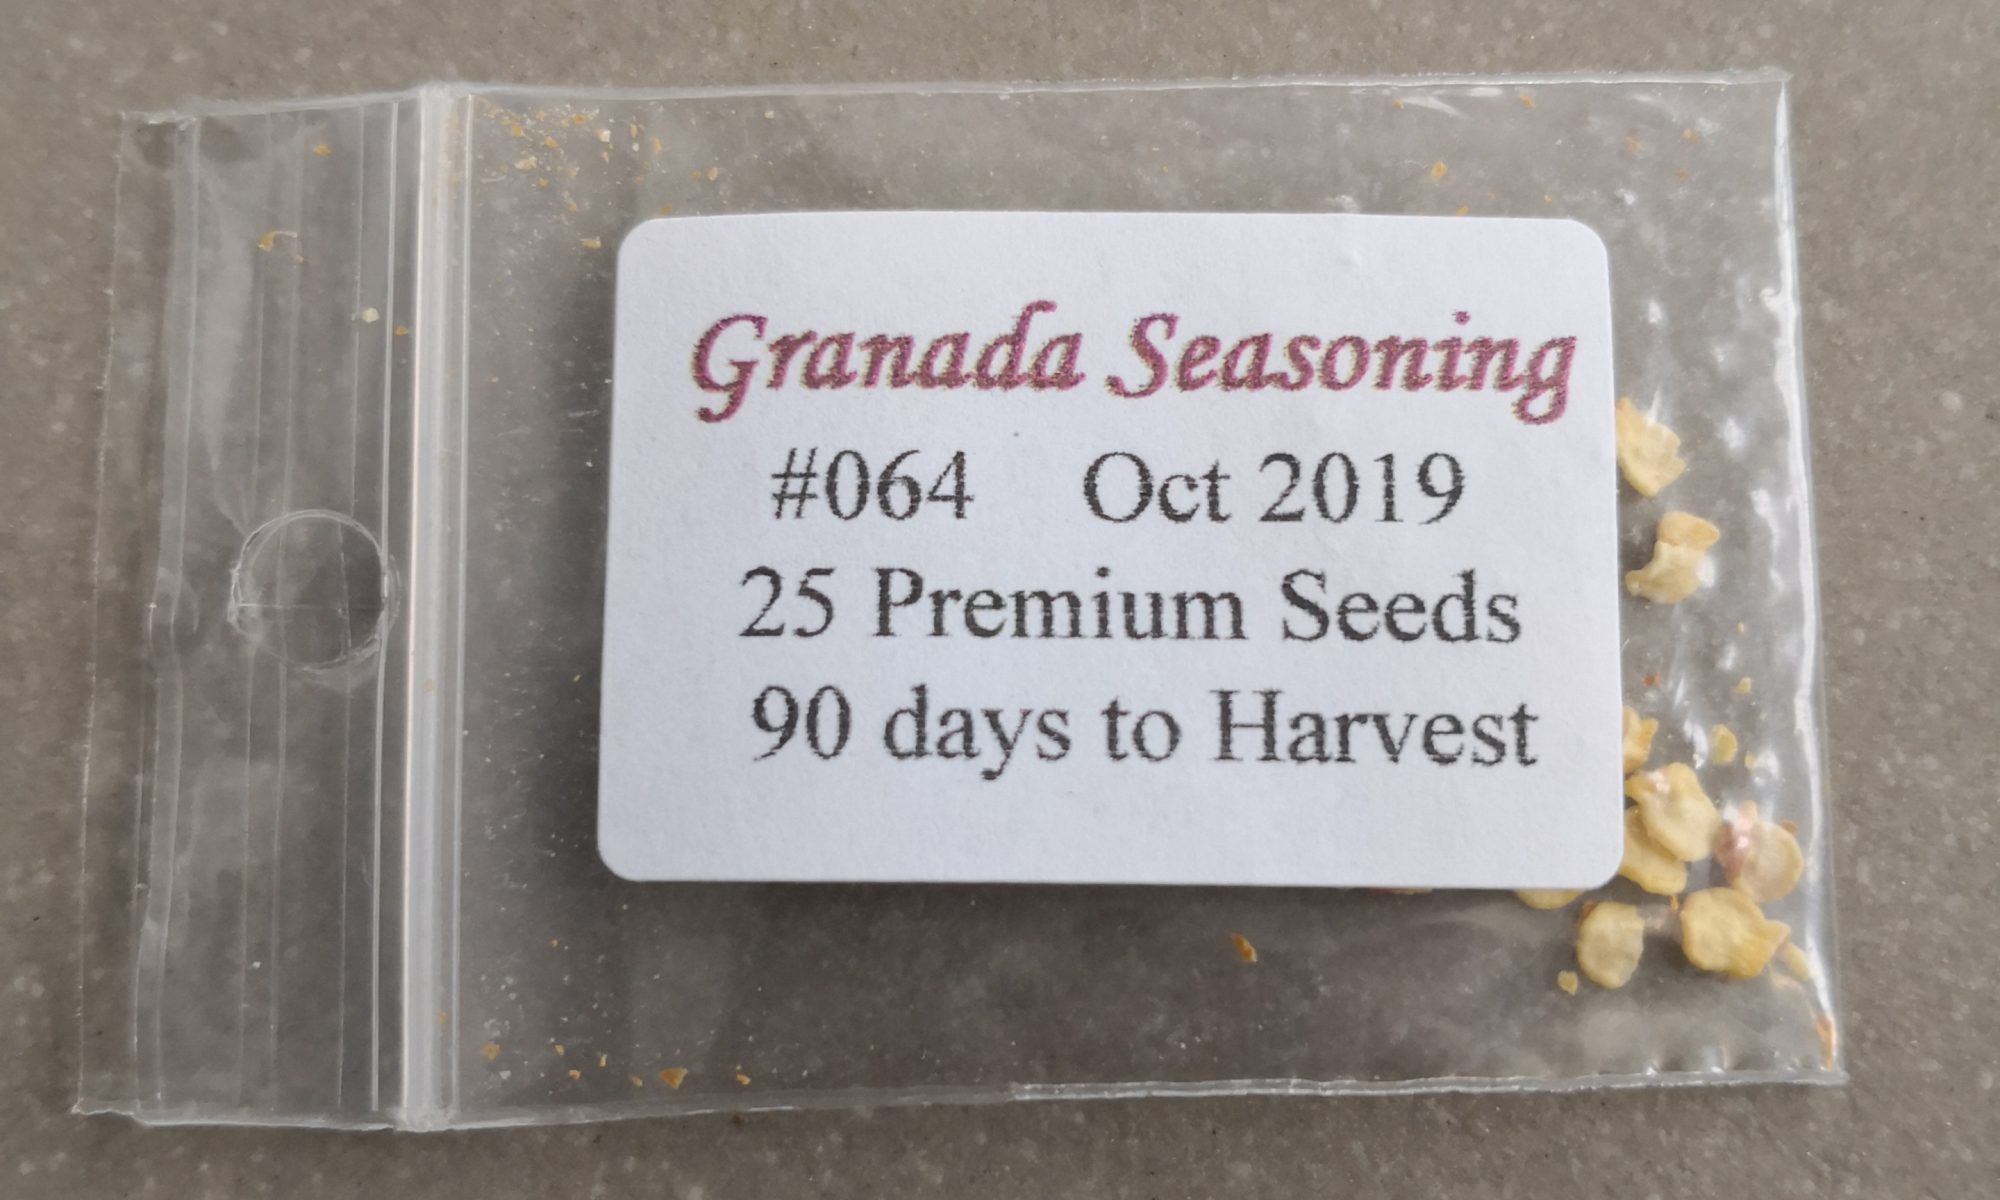 Granada Seasoning Pepper Seeds